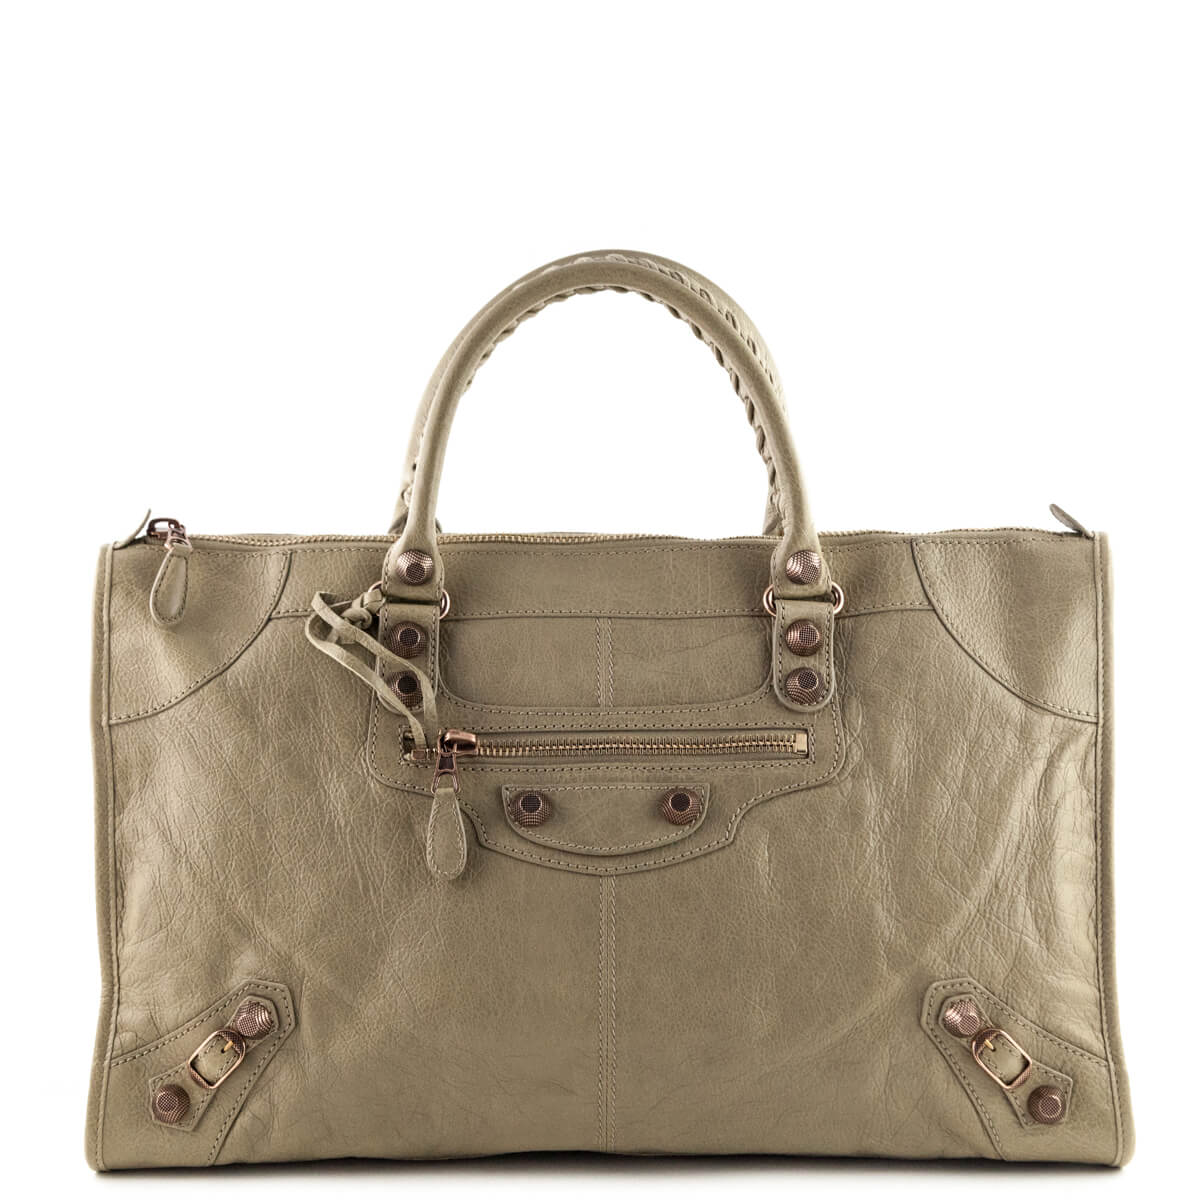 b26416ab06d2d Balenciaga Beige Giant 21 Rose Gold Work bag - LOVE that BAG - Preowned  Authentic Designer ...